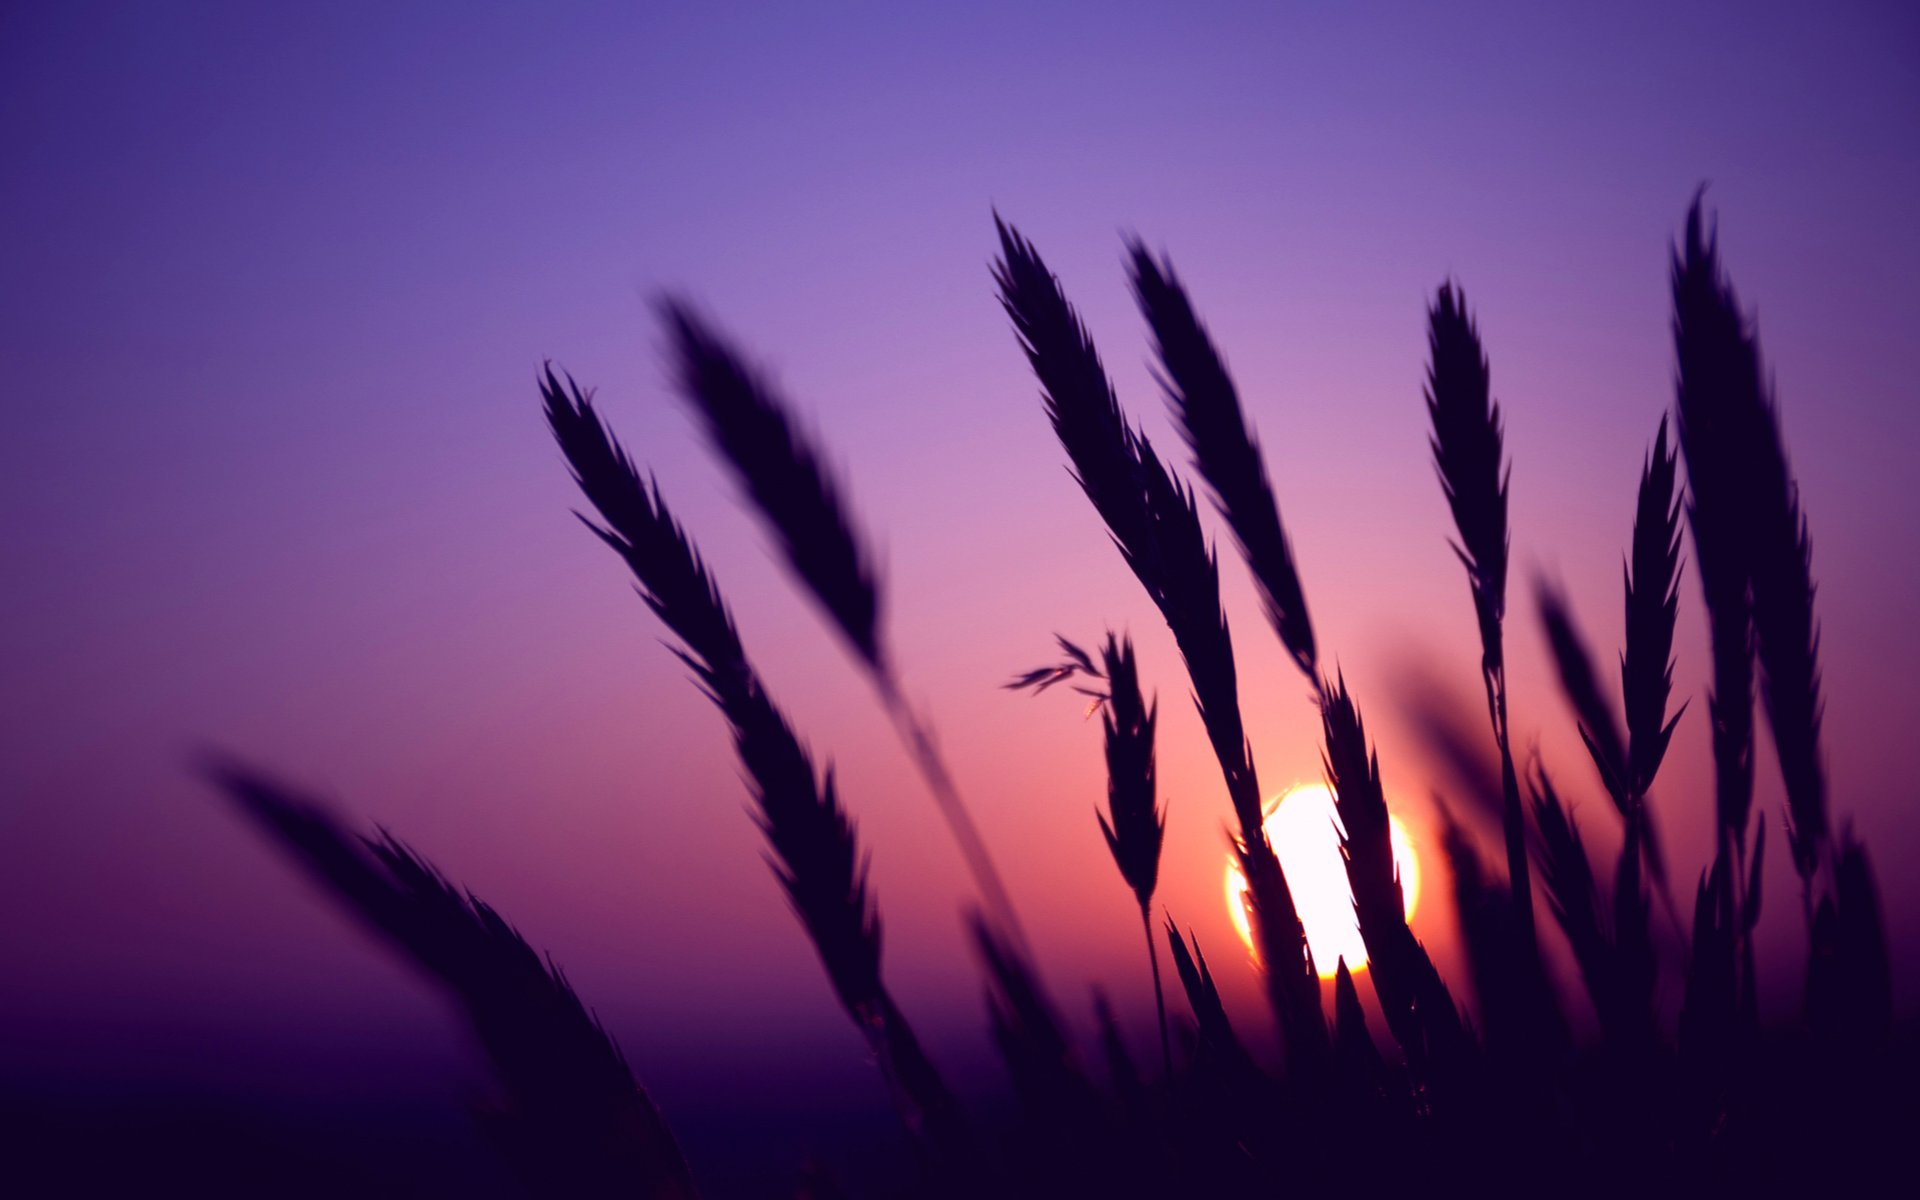 sunset, evening, wheat spikelets